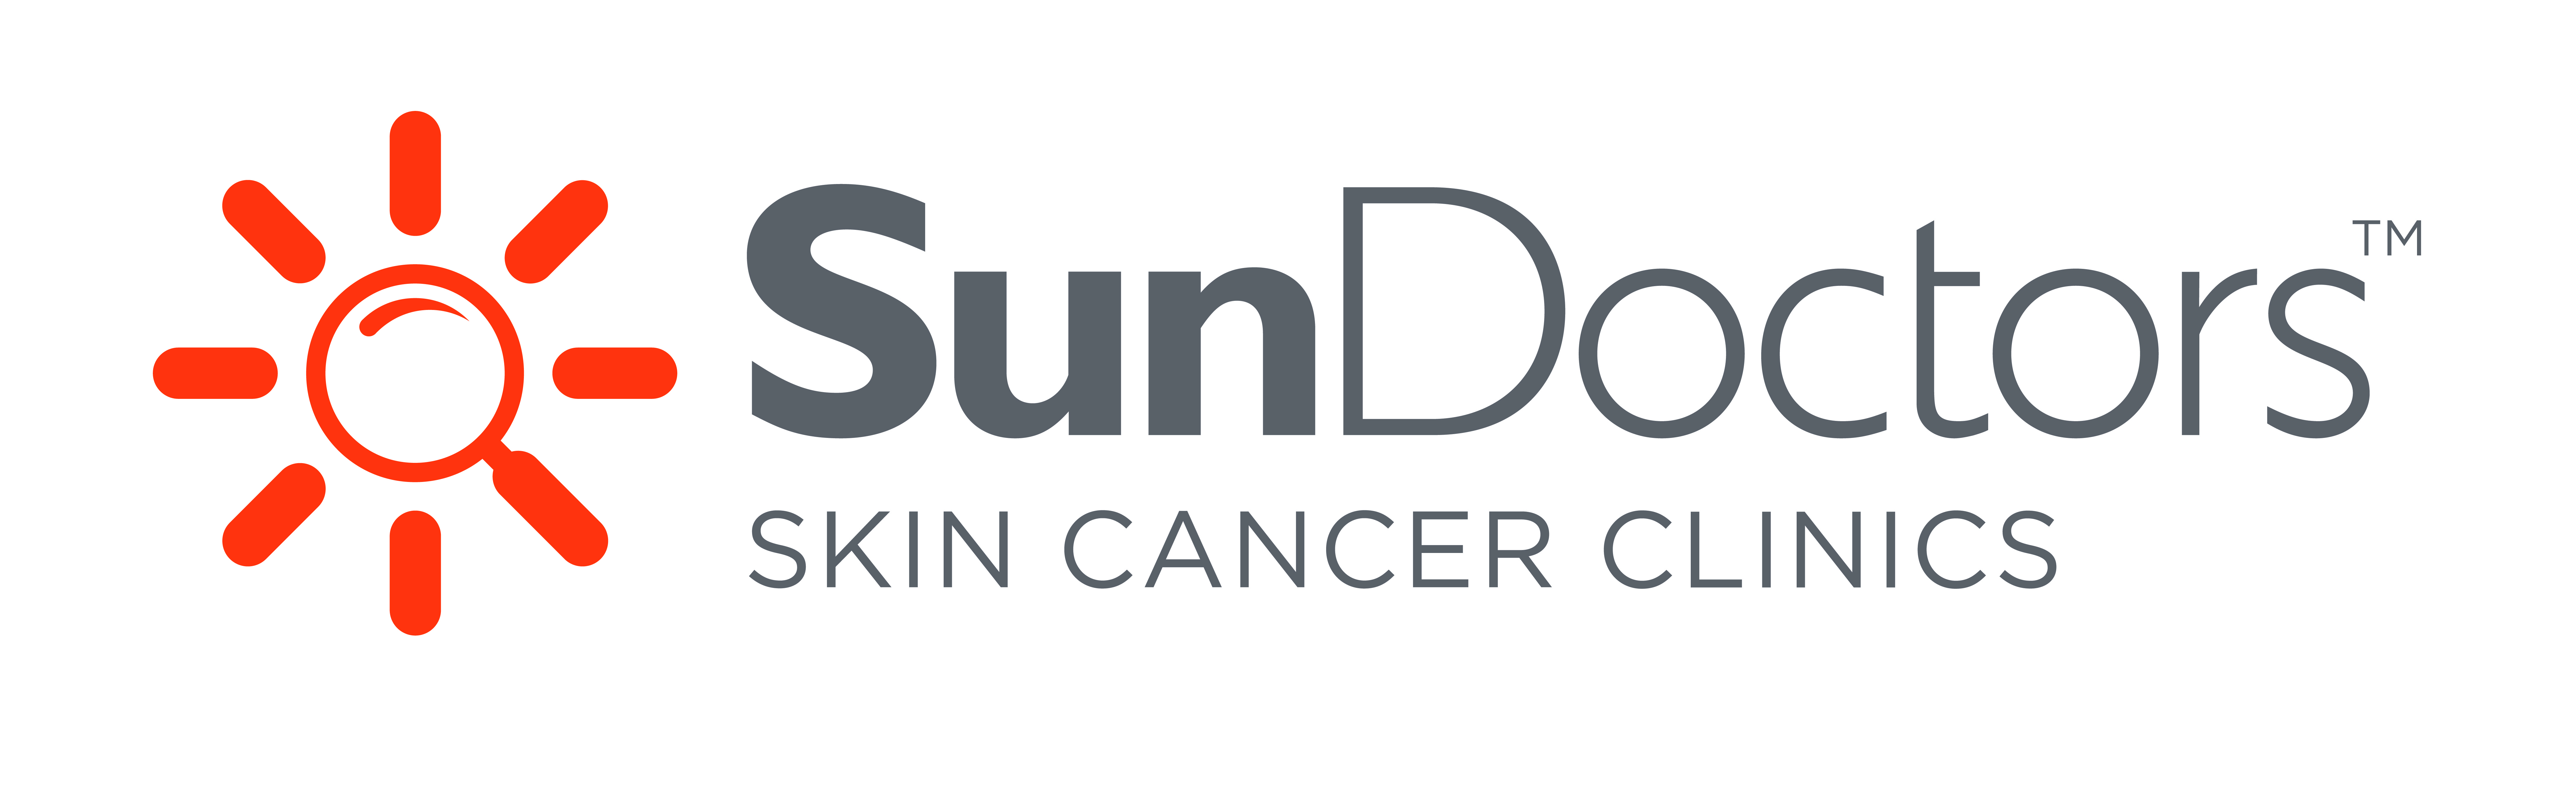 Bowral SunDoctors _disabled2